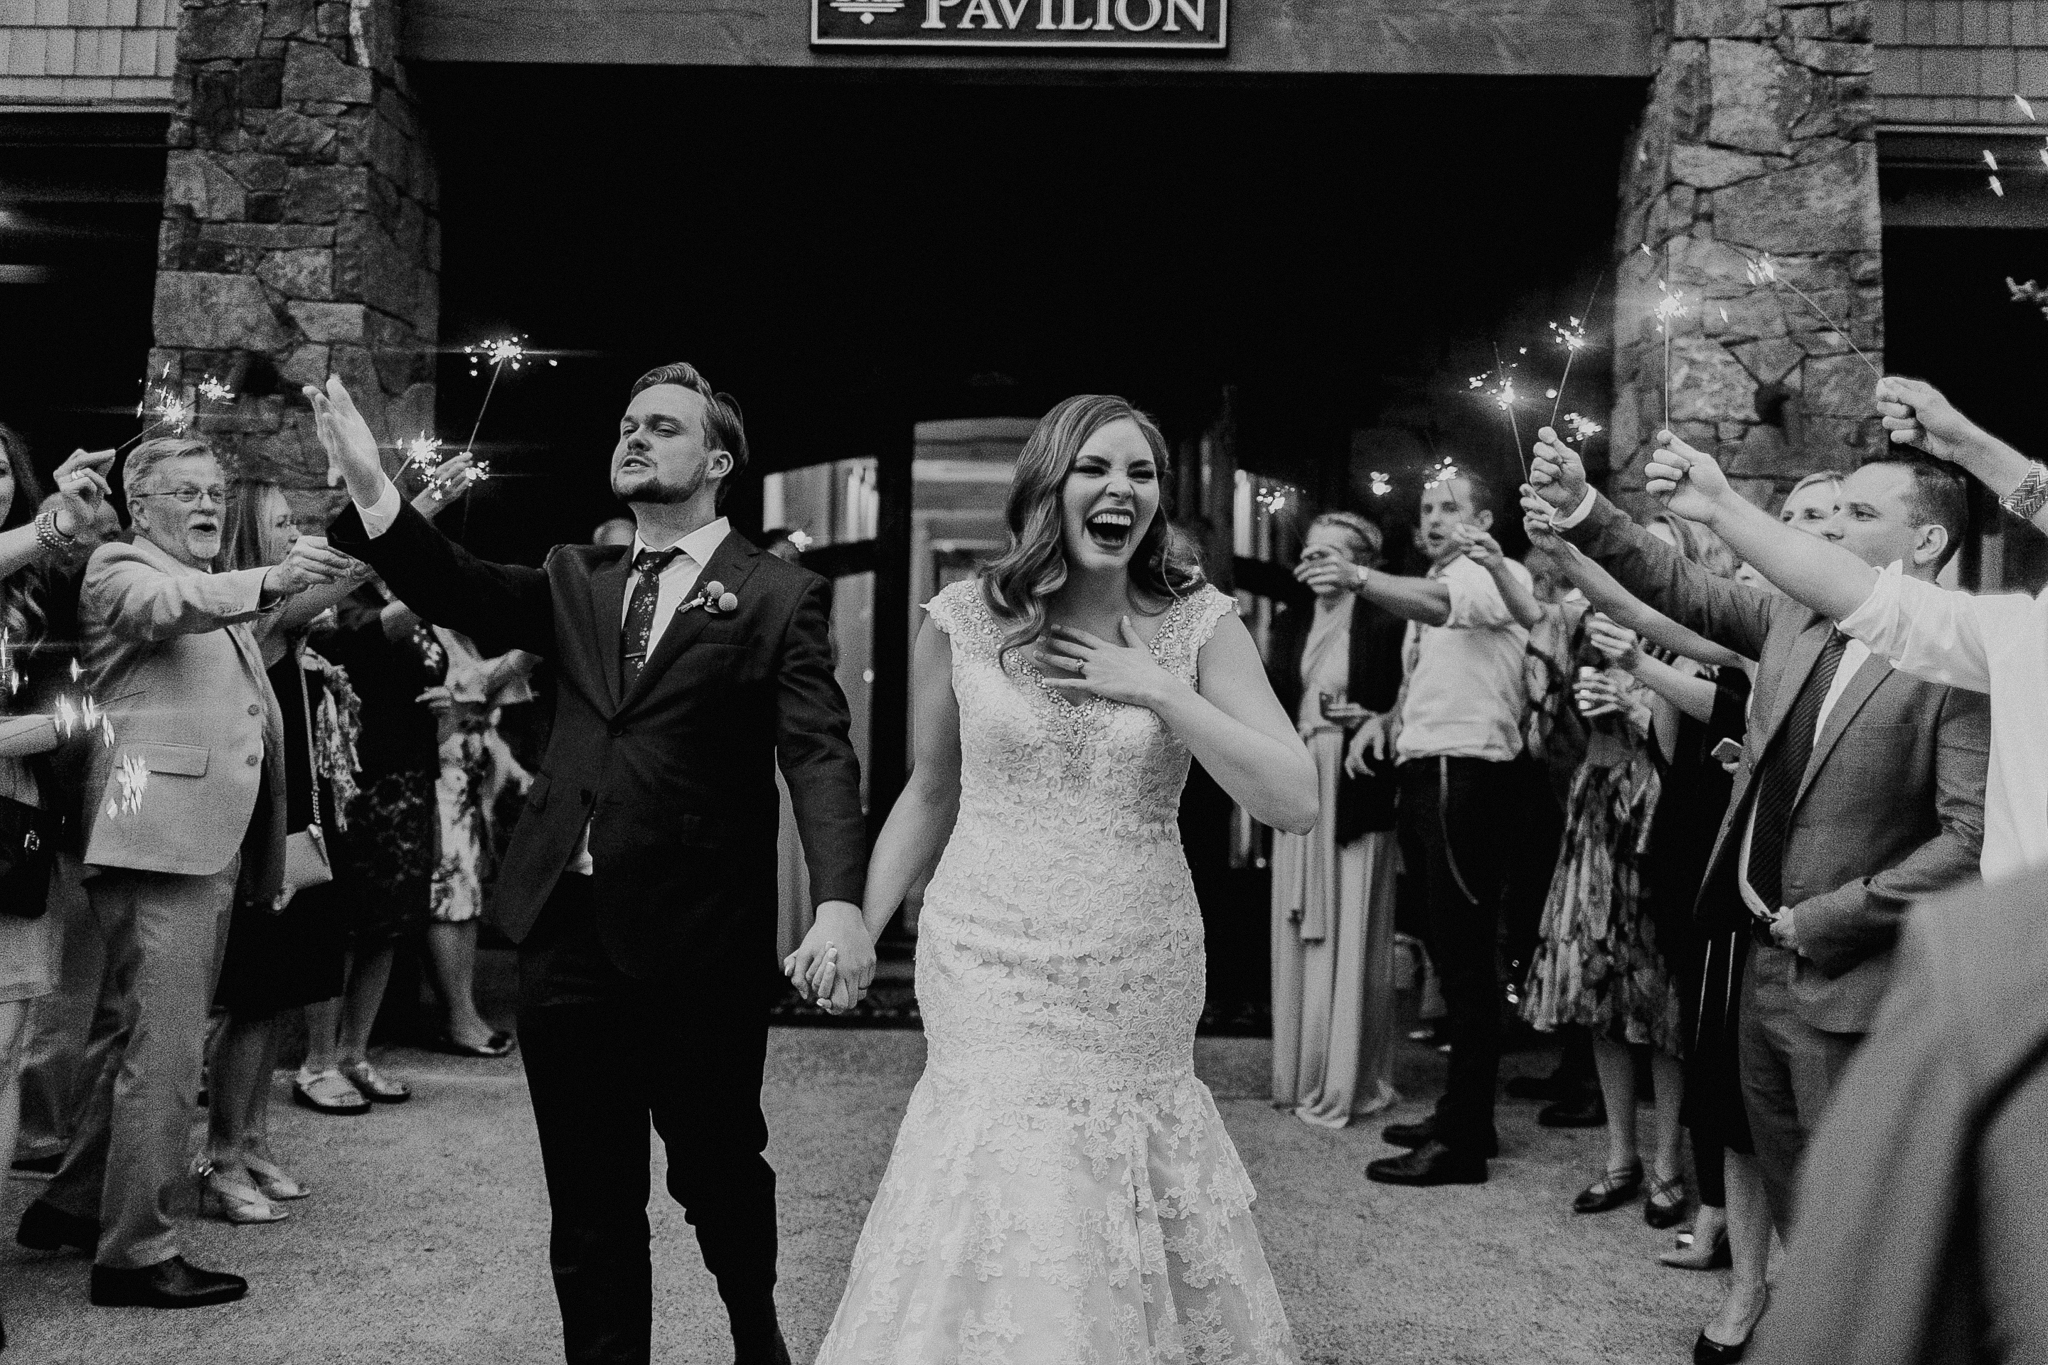 documentary wedding photograph of bride and groom leaving reception